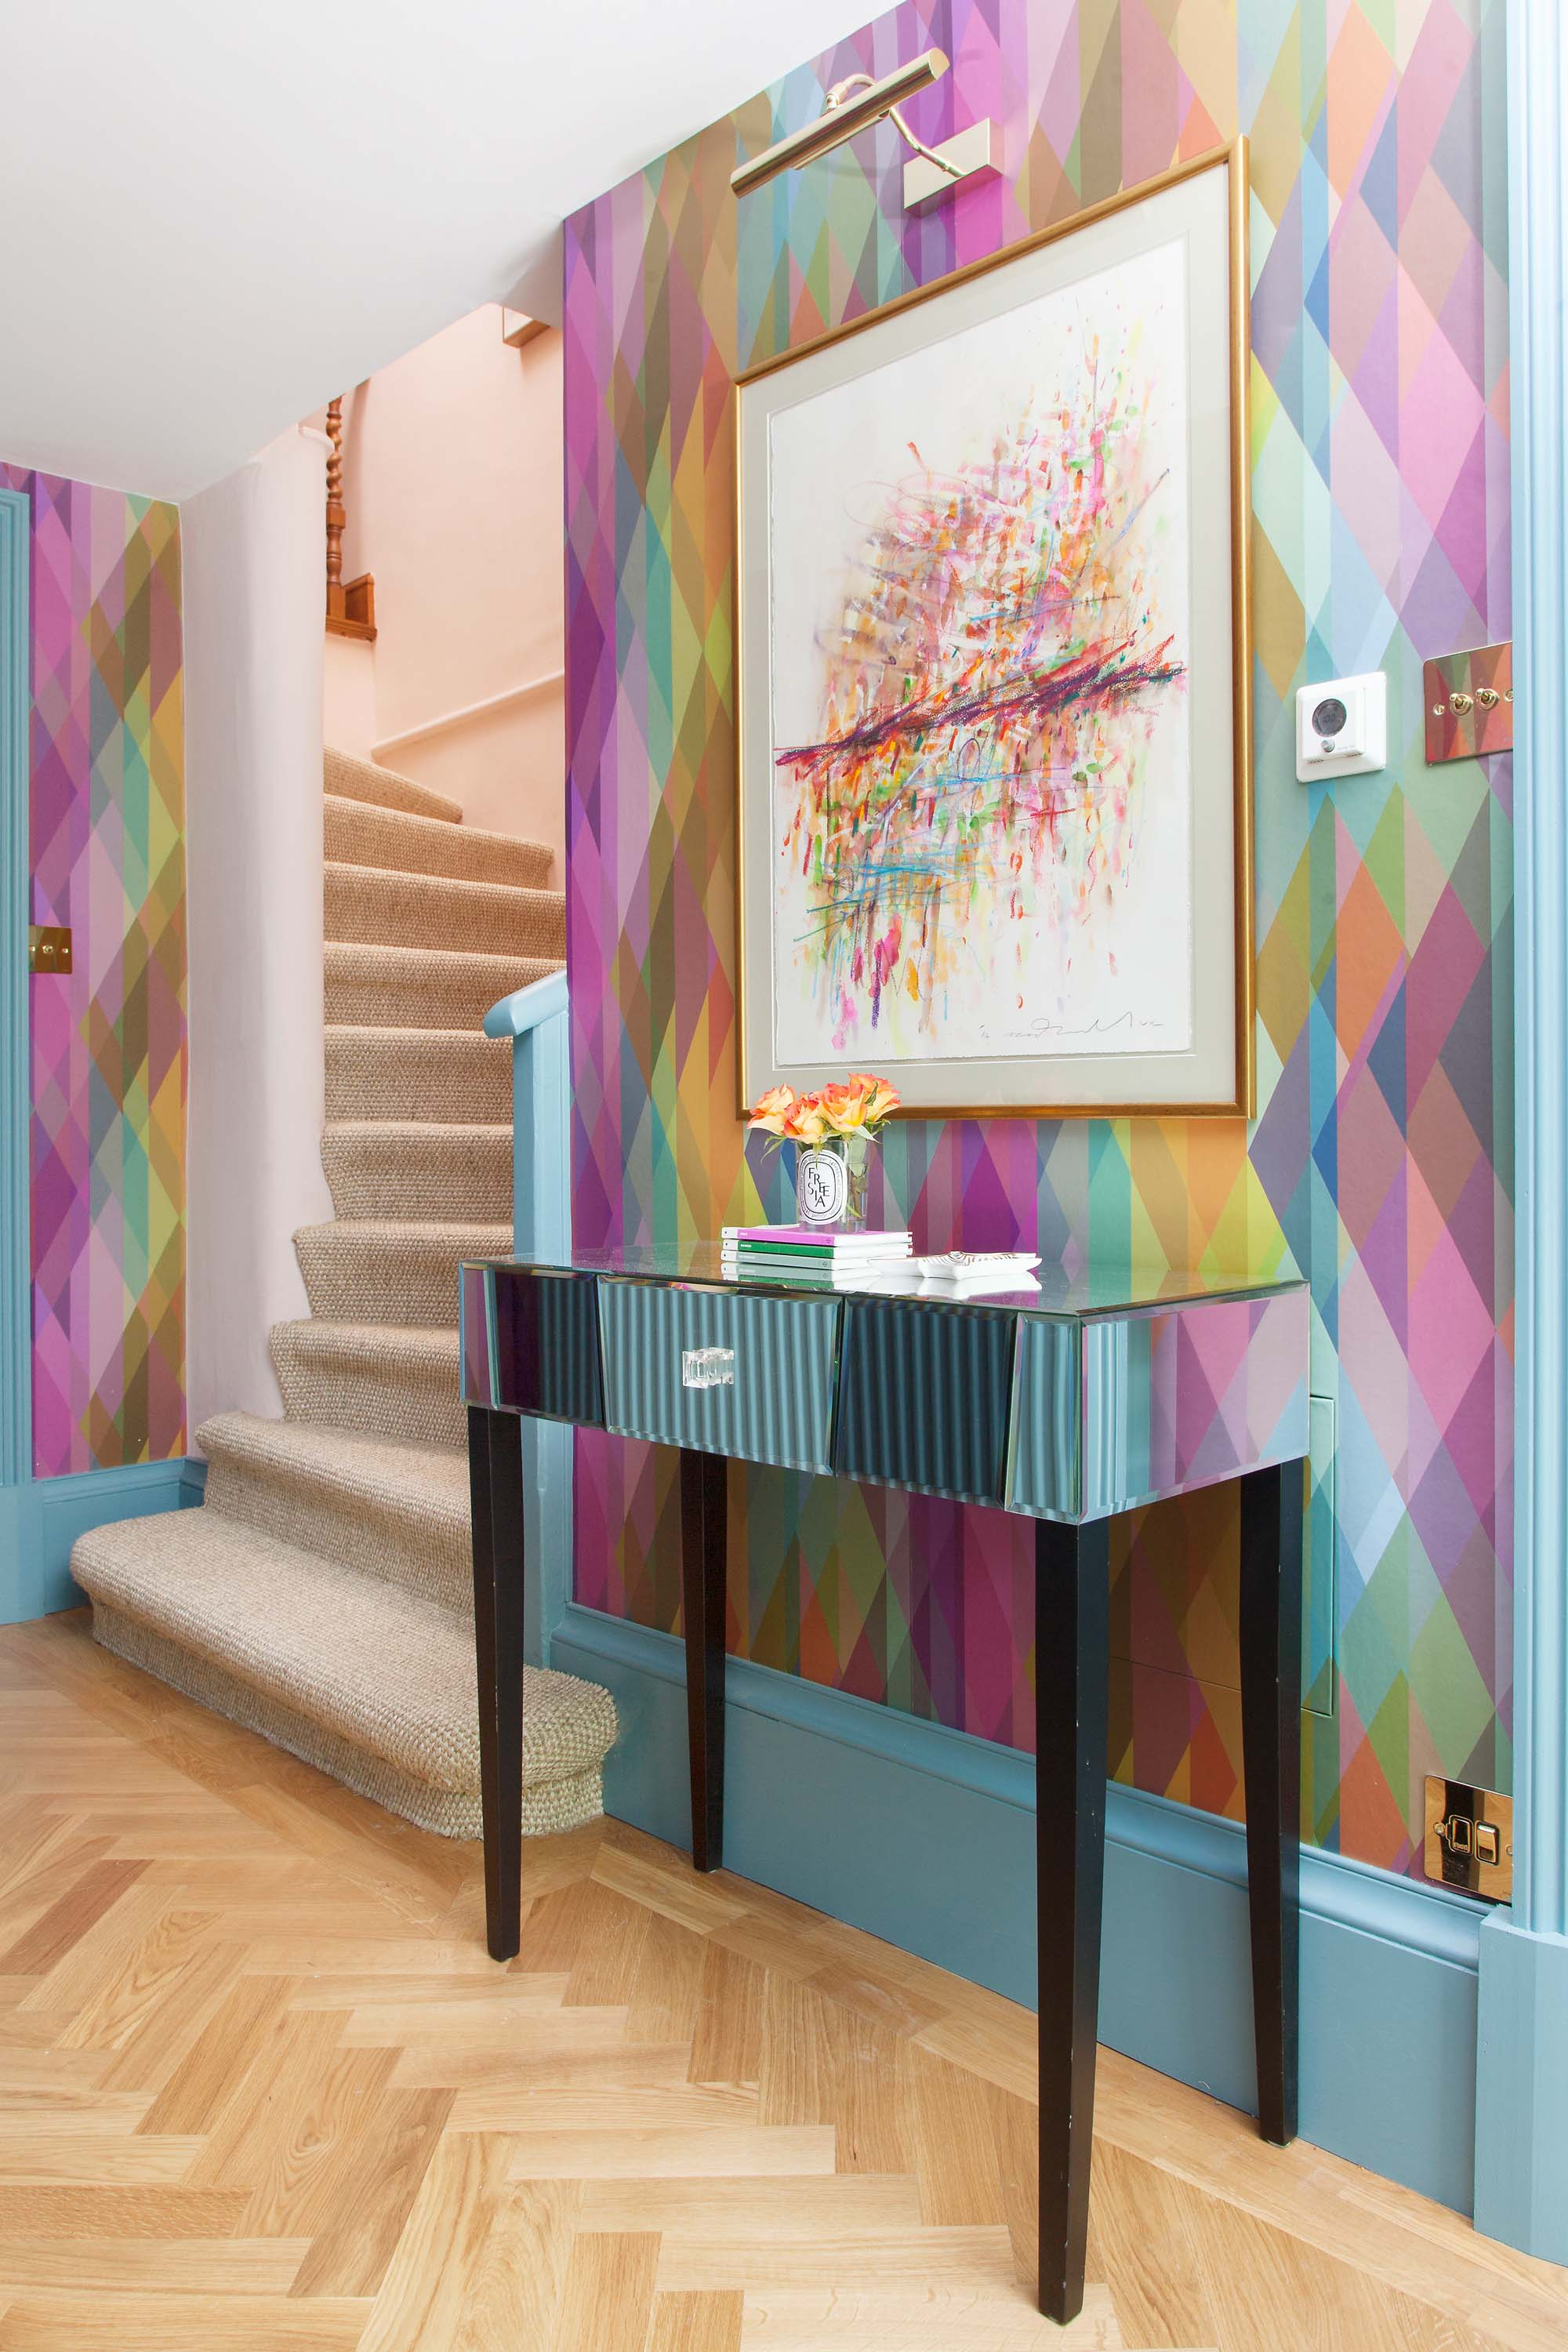 Cole & Son Prism in my basement - my favourite wallpaper, Wednesday or otherwise/Photo: Susie Lowe